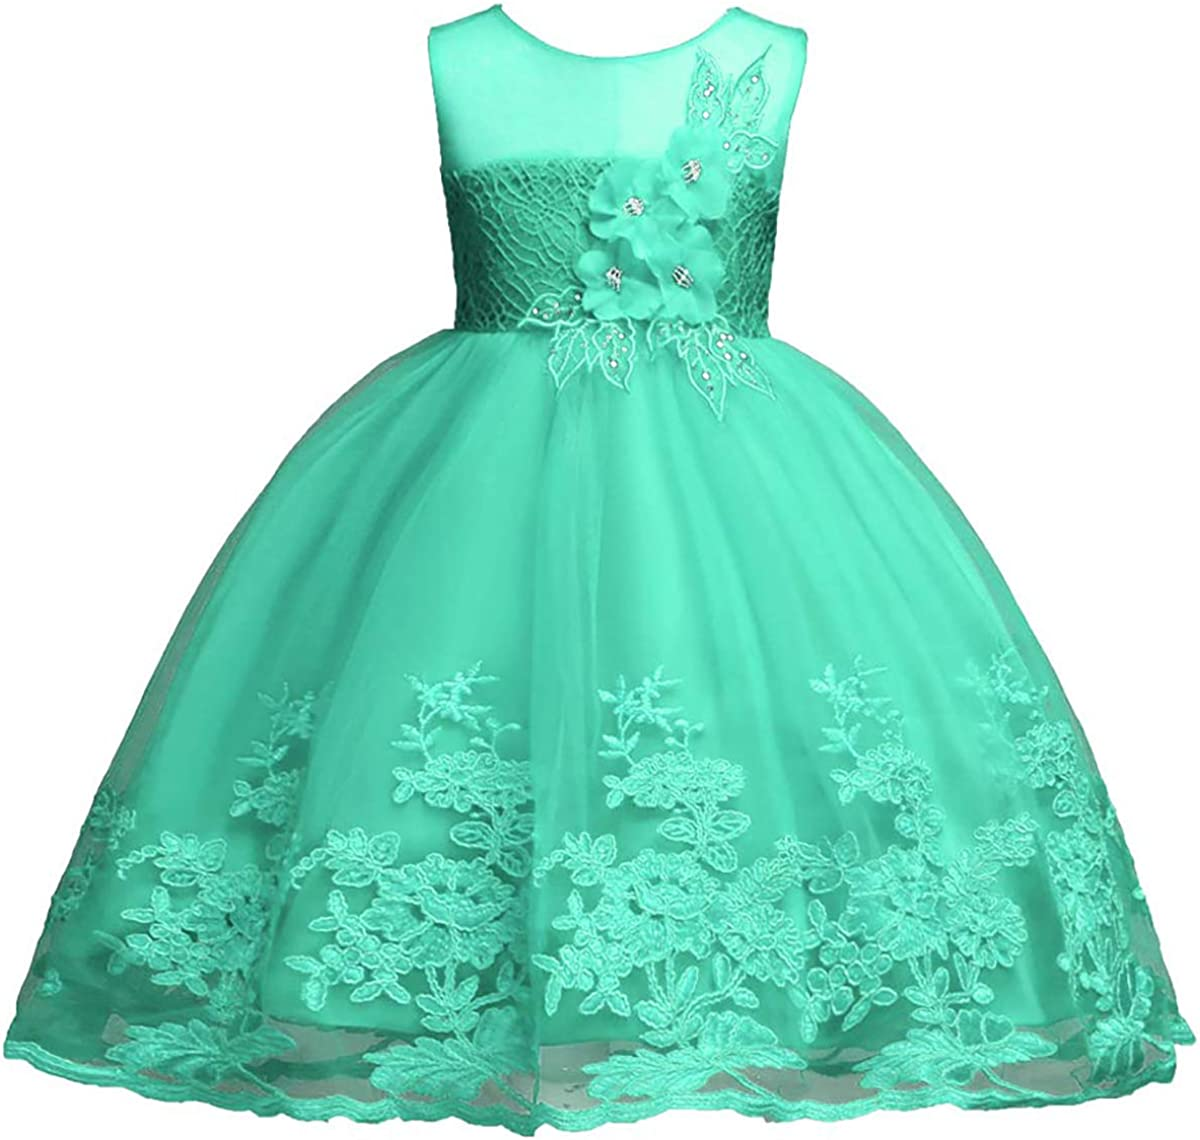 Girls Wedding Party Lace Dress Princess A surprise price is realized Bridesmaid Pageant Over item handling ☆ Flowe